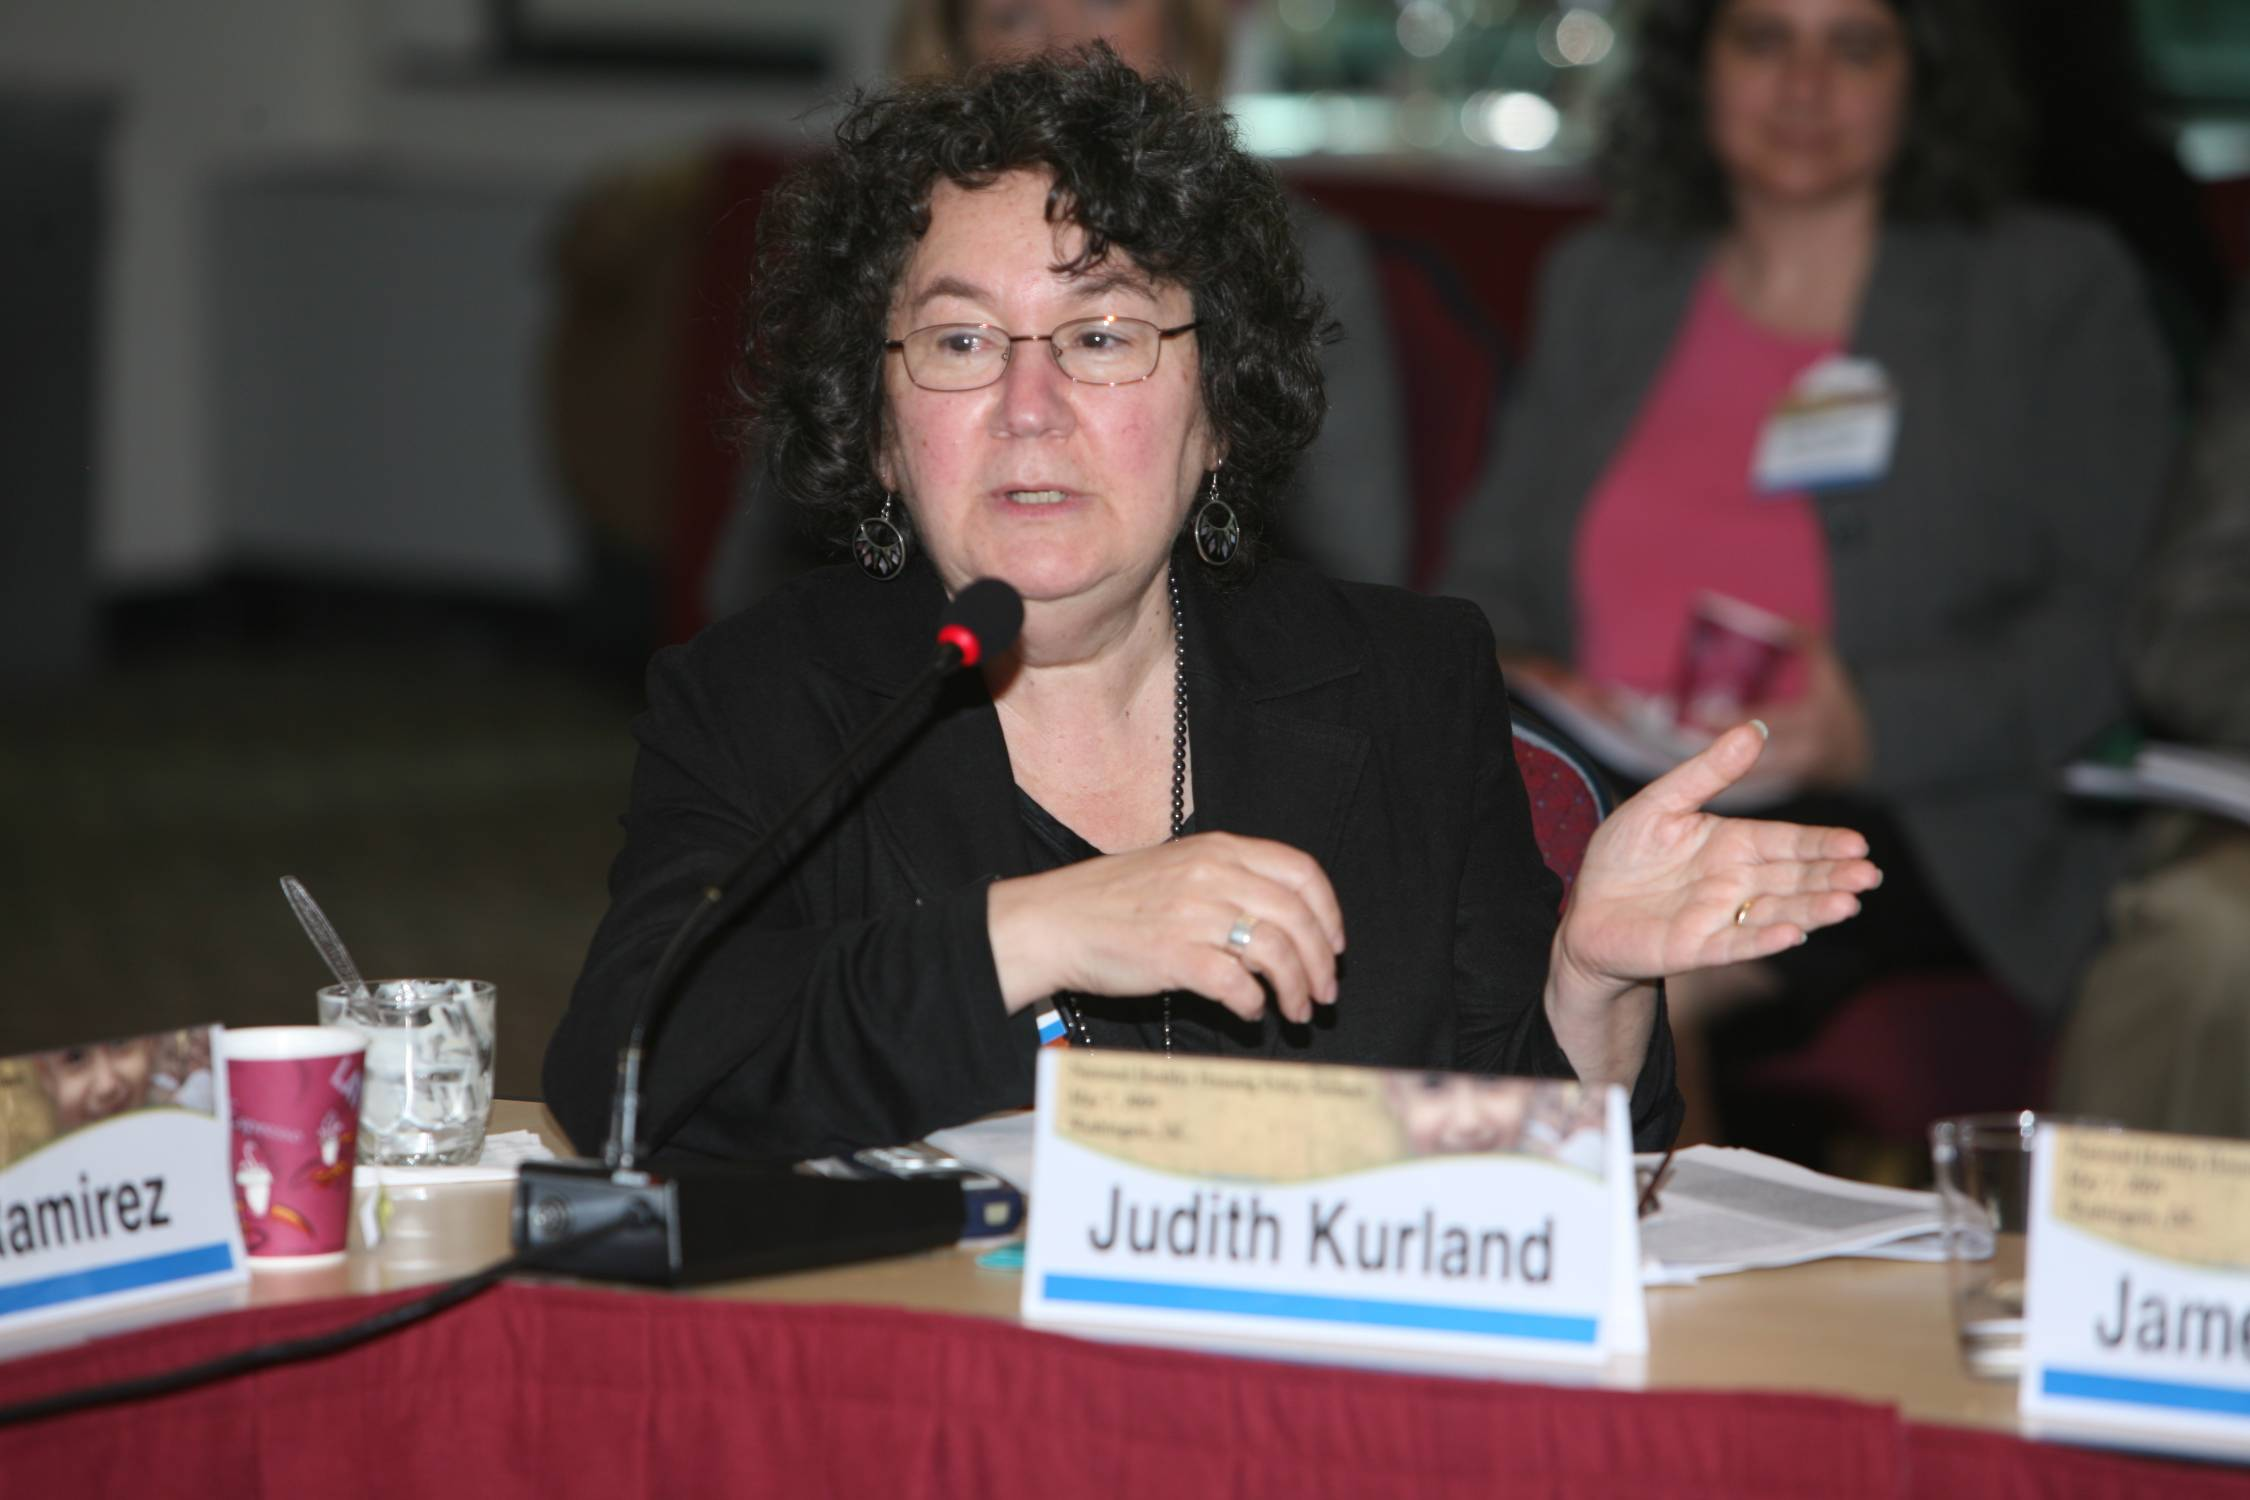 Judith Kurland, NCHH Board and Center for Community Democracy and Democratic Literacy